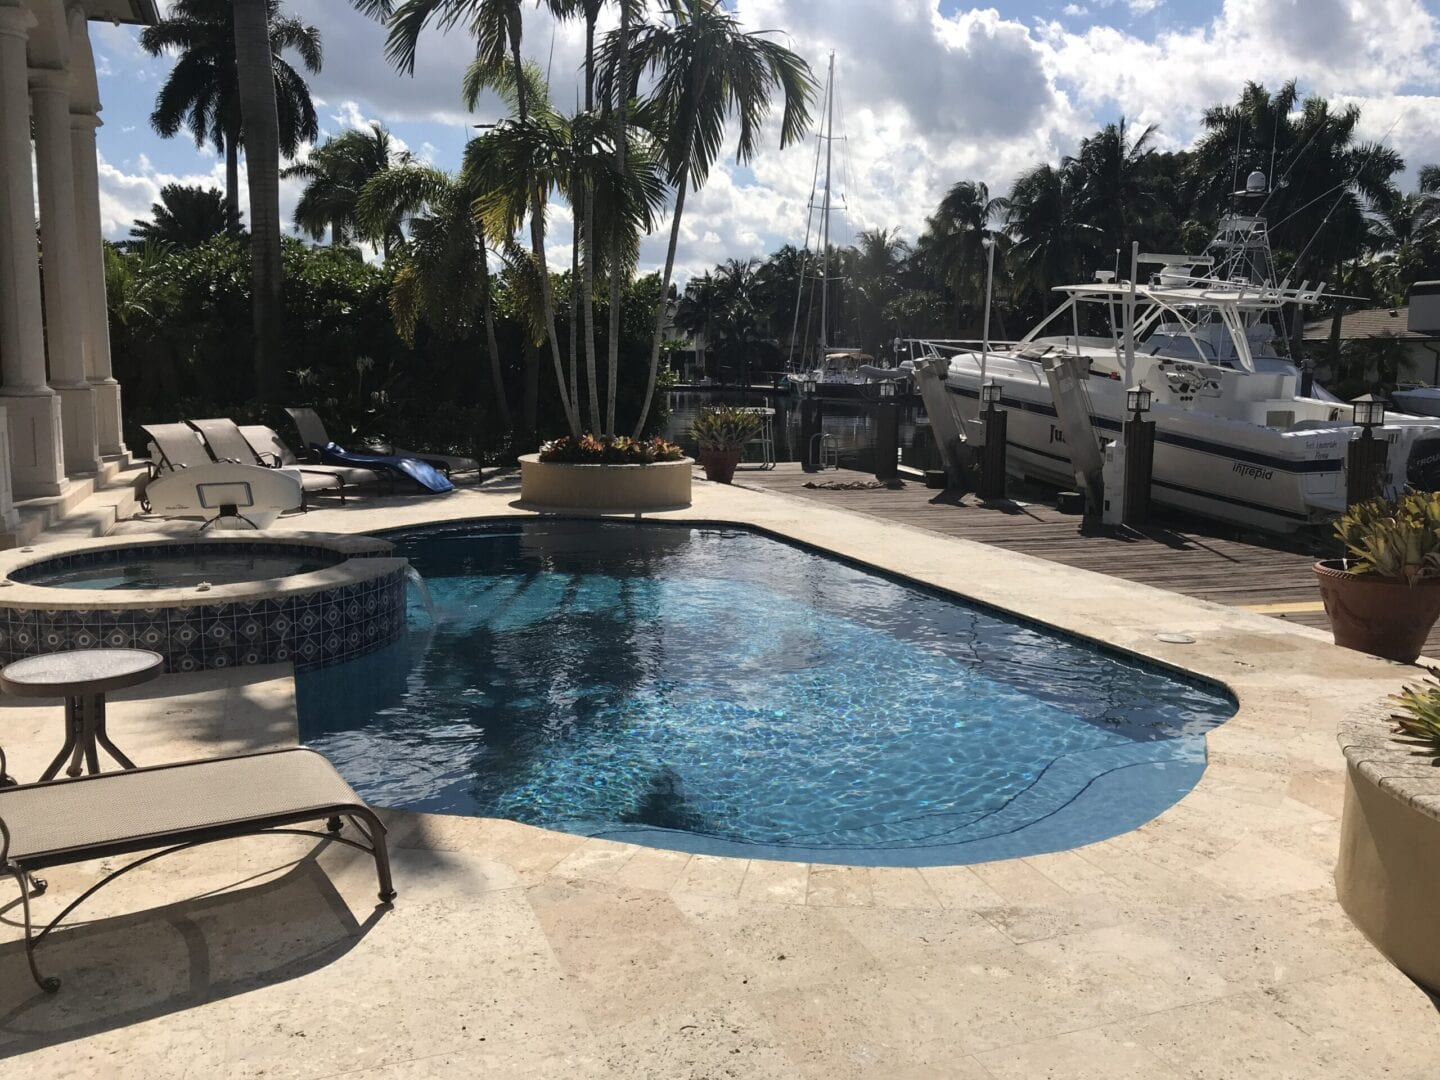 Small pool and Jacuzzi and a yacht parked nearby